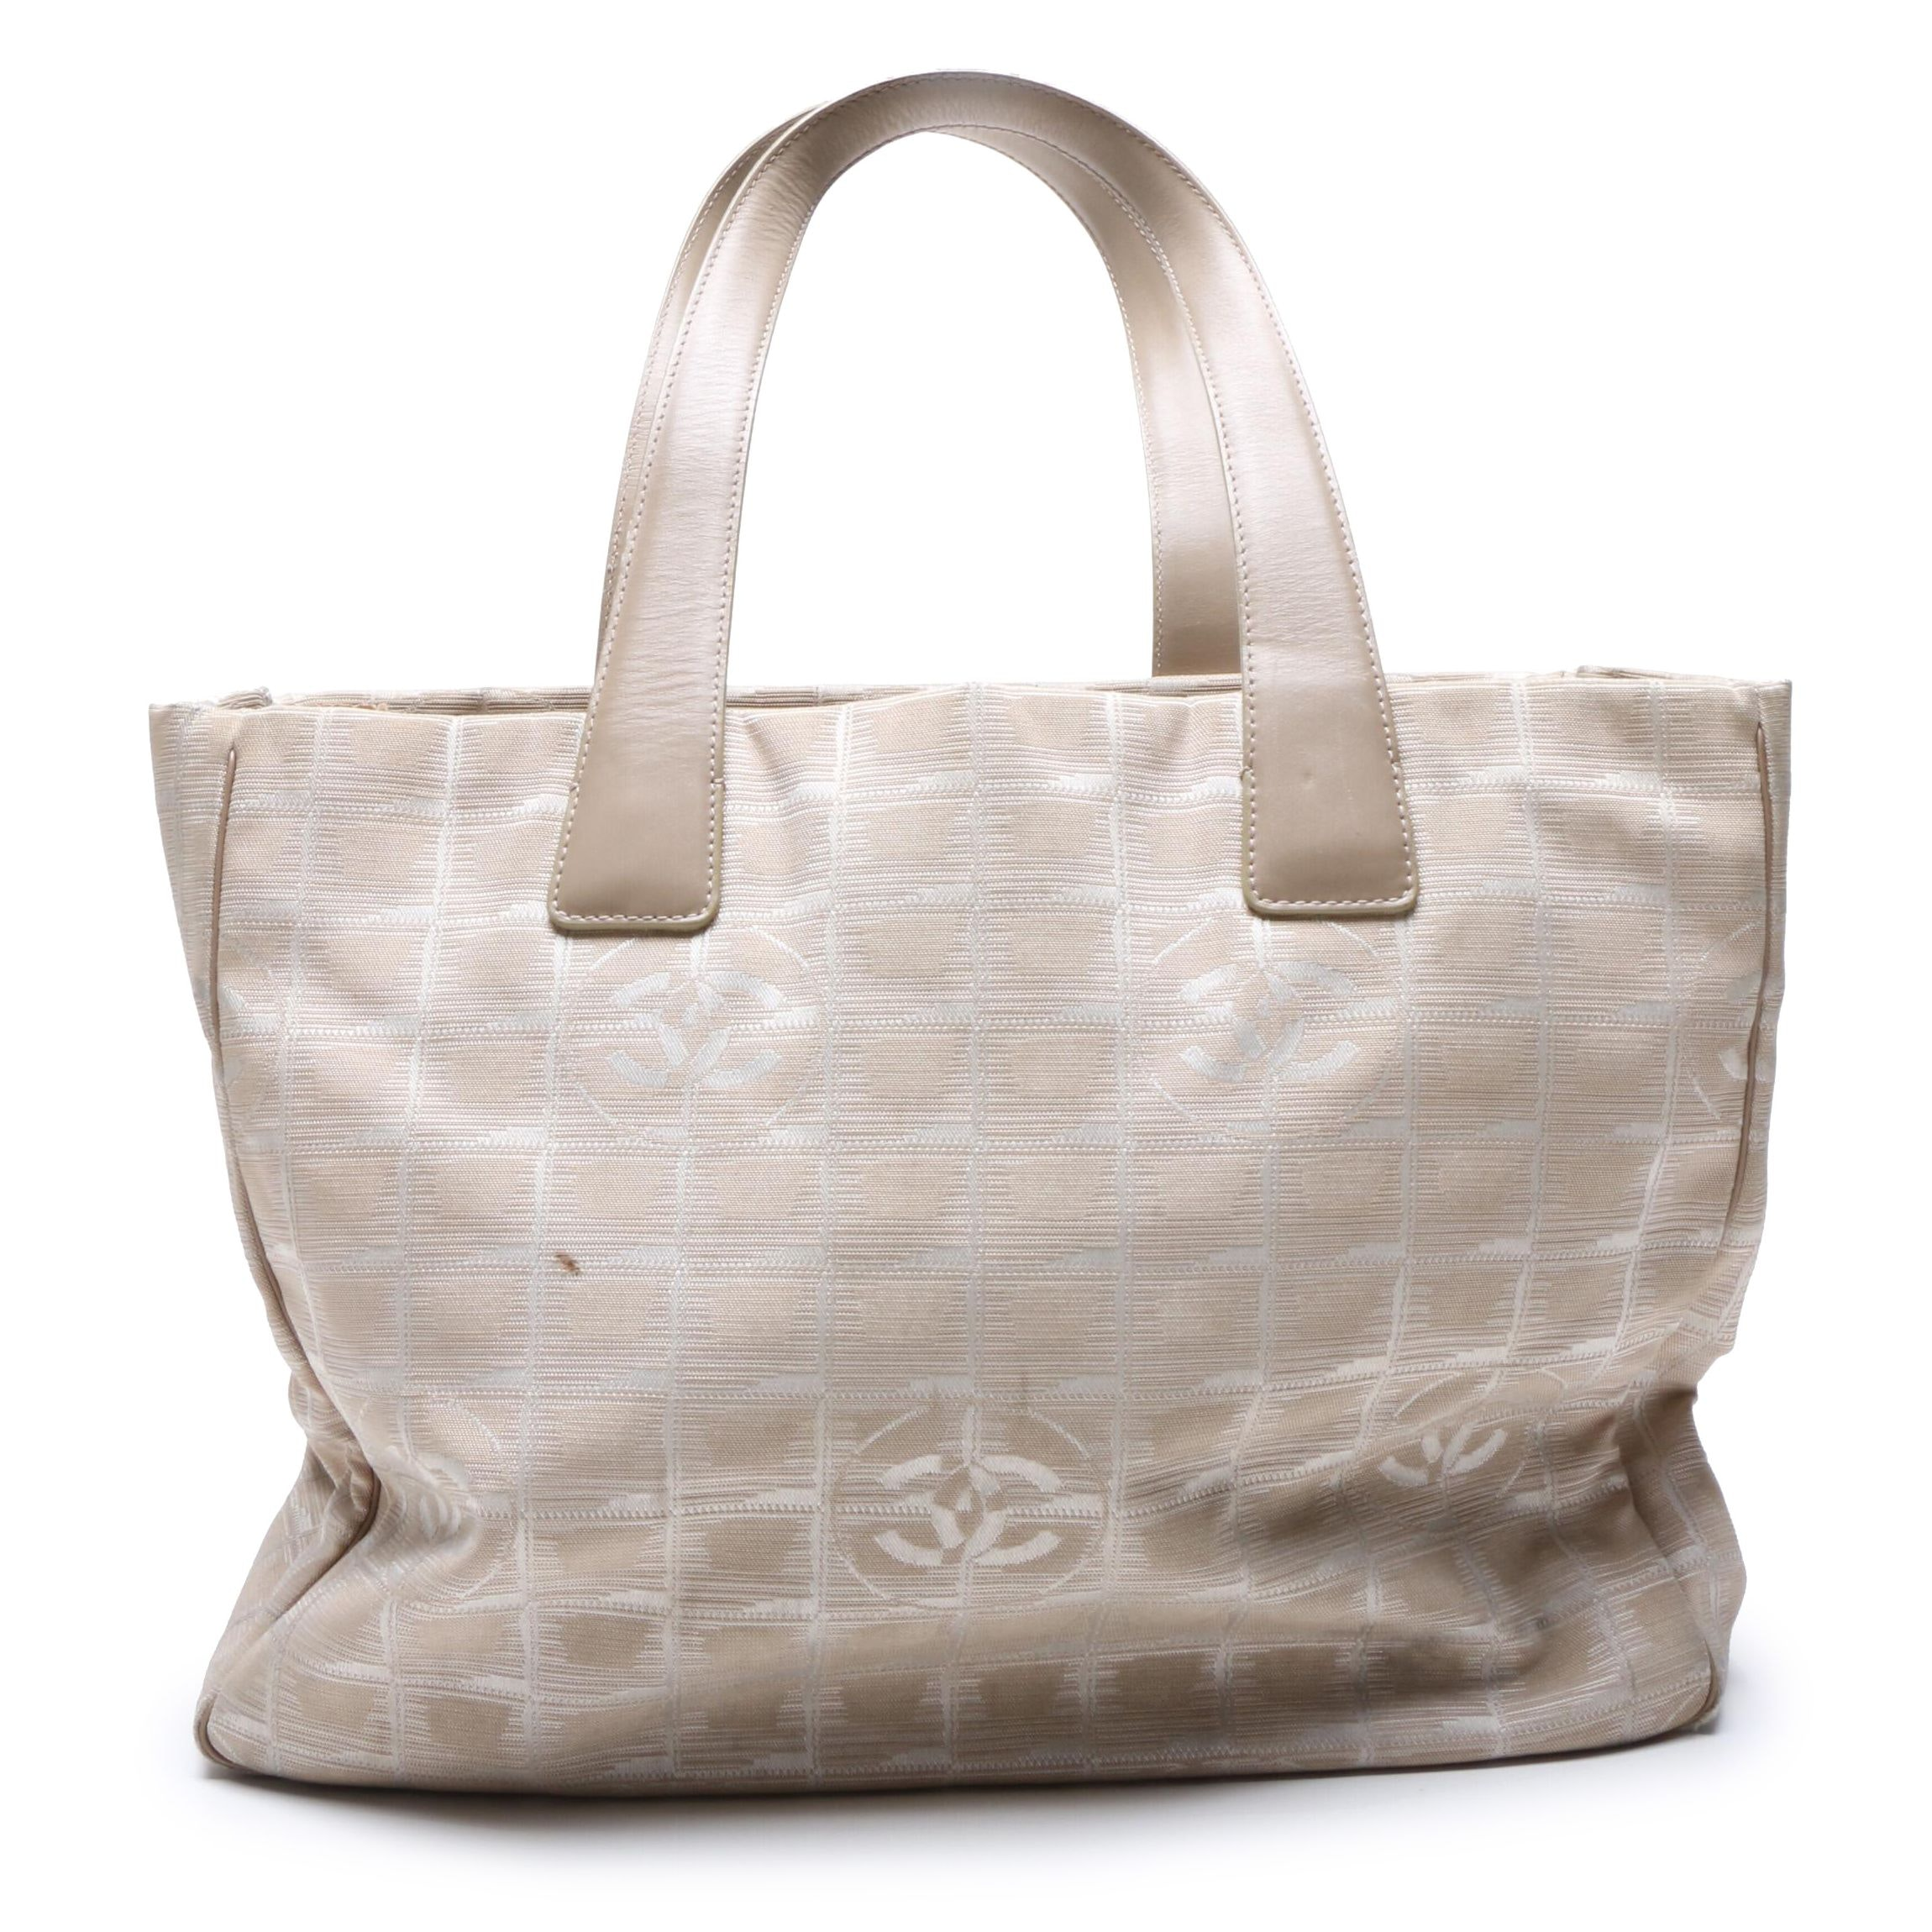 Chanel Beige Nylon New Travel Line Tote Bag with Leather Handles